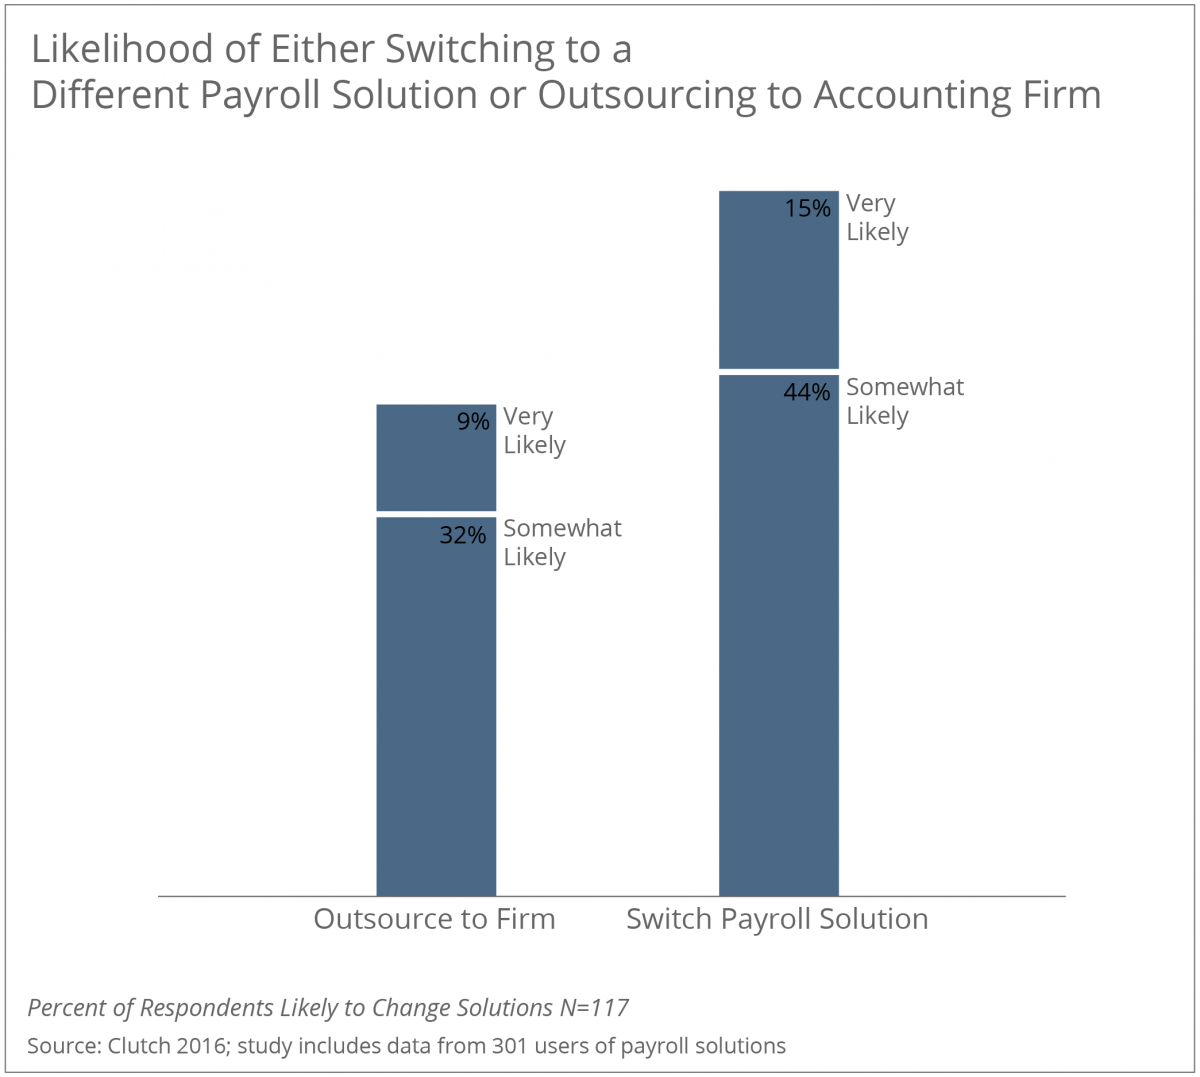 Likelihood of Either Switching or Outsourcing